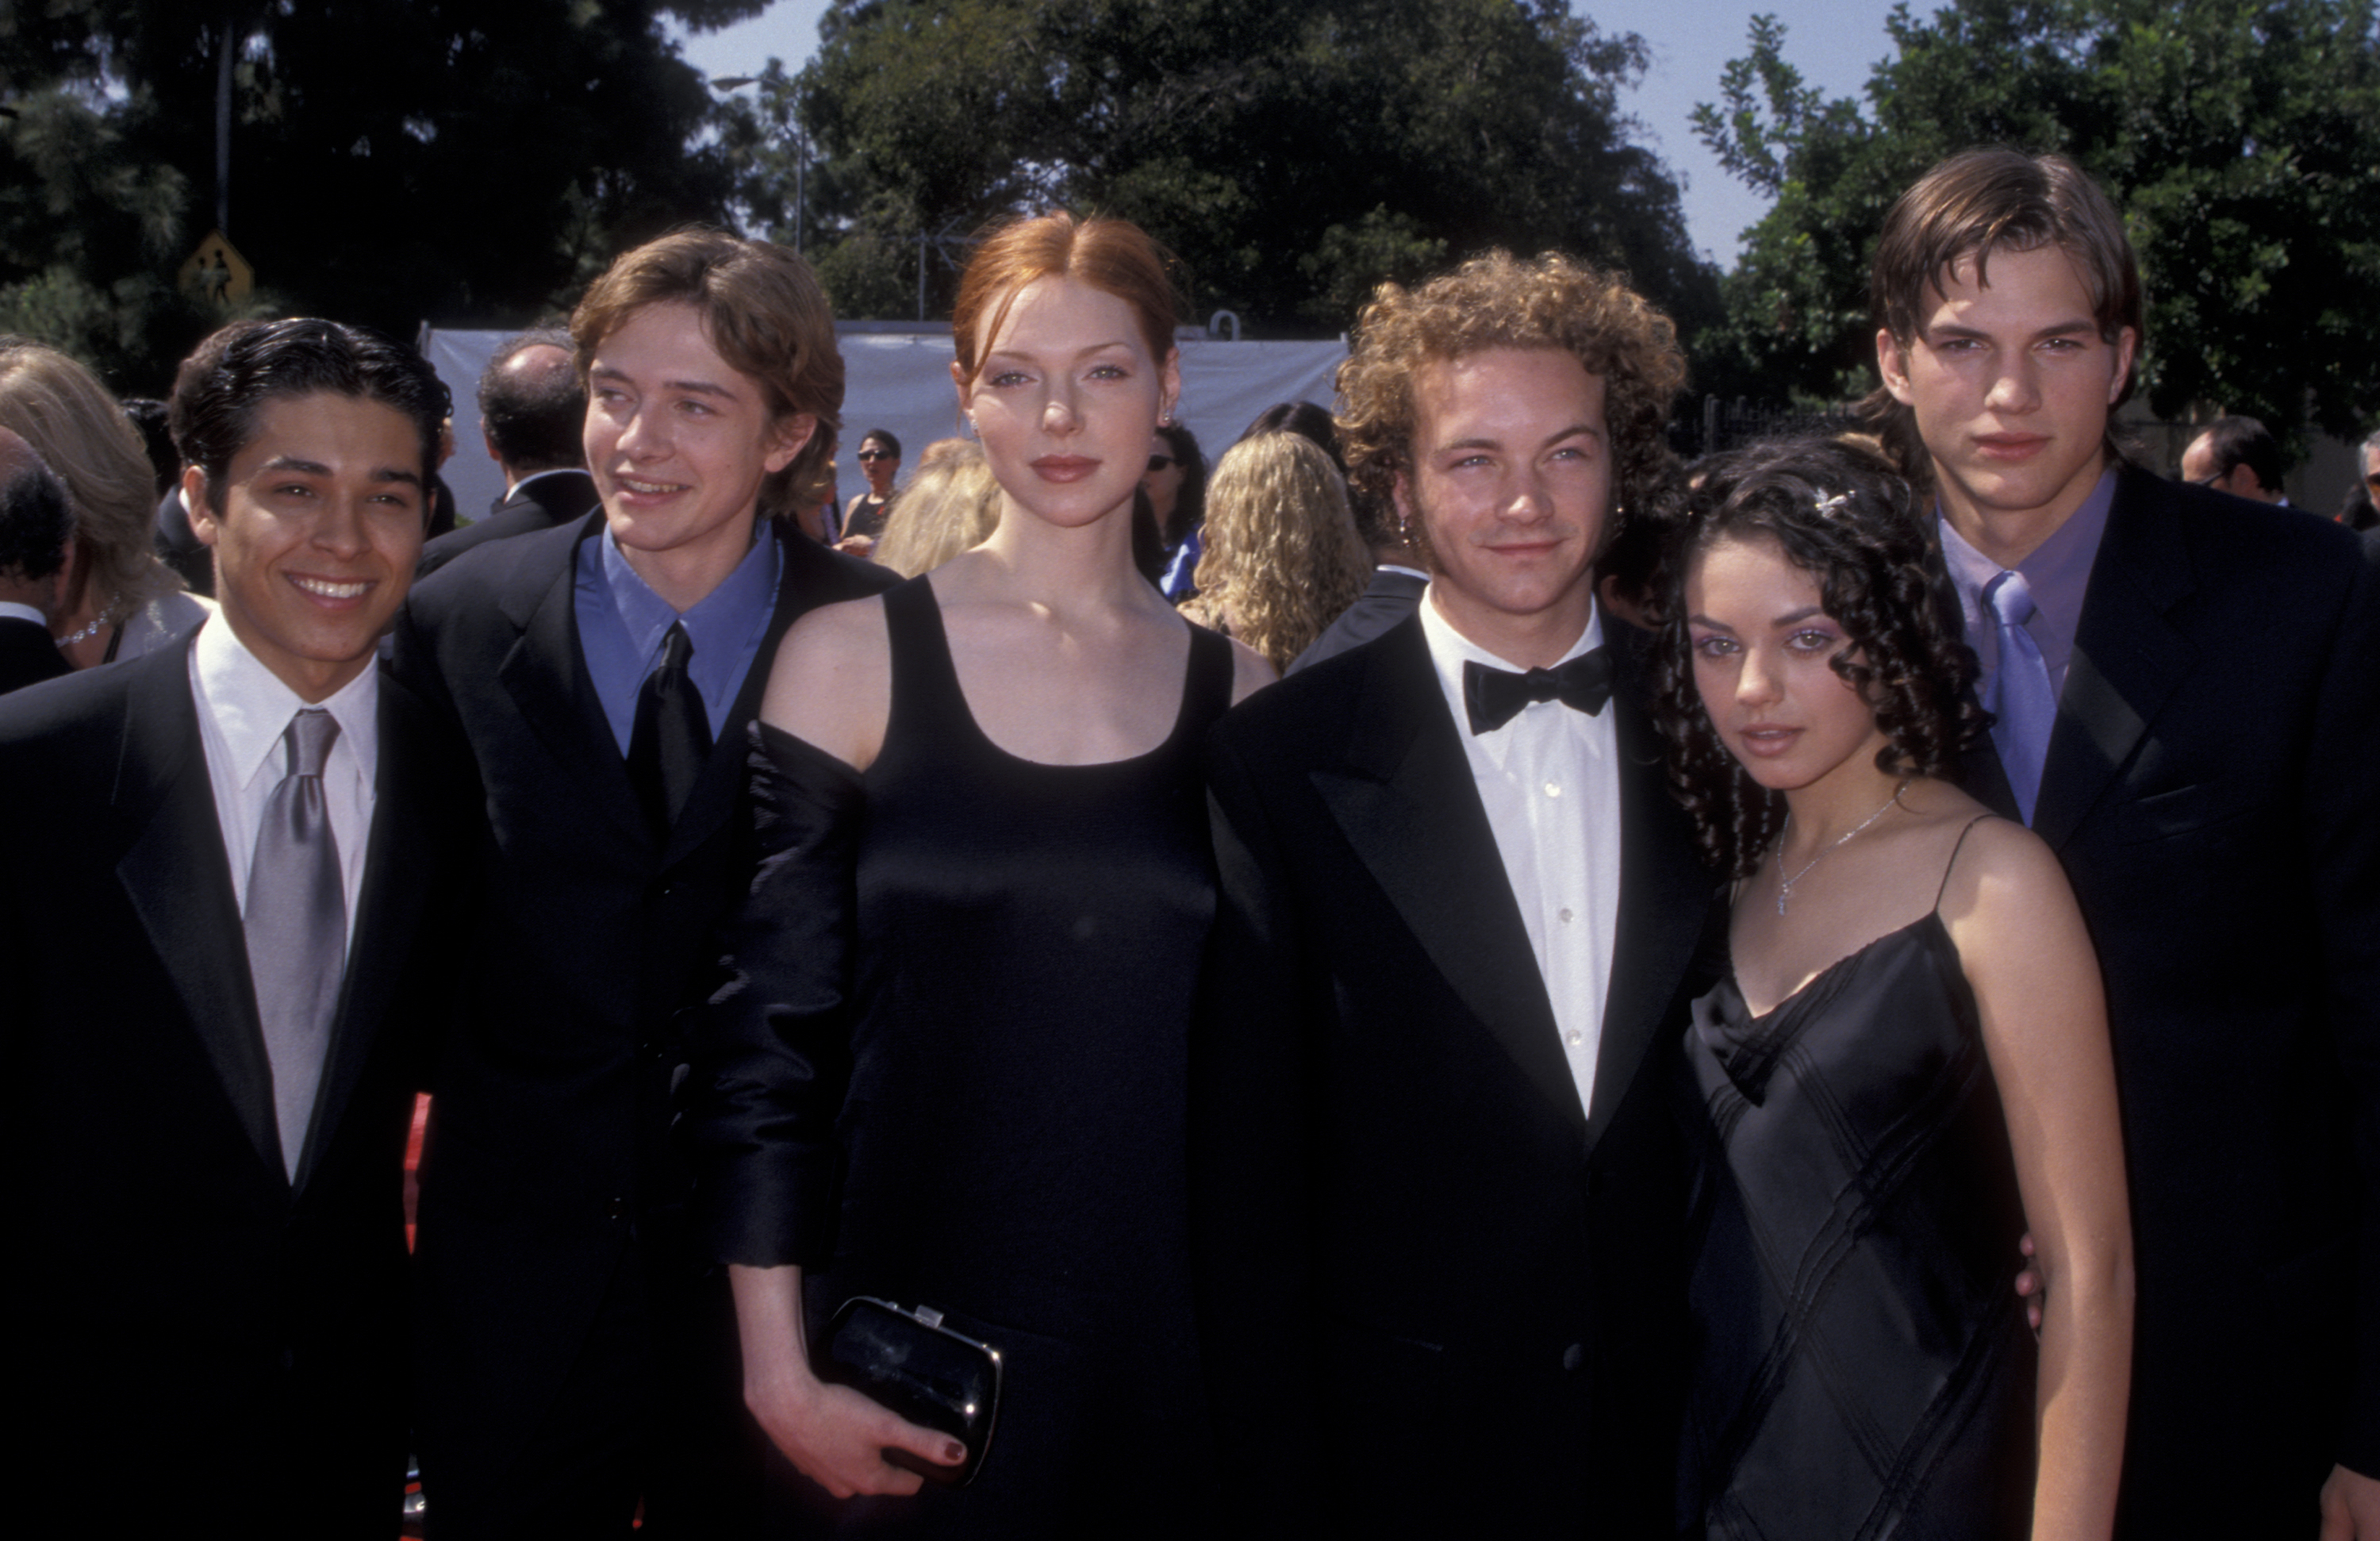 Wilmer Valderrama, Topher Grace, Laura Prepon, Danny Masterson, Mila Kunis and Ashton Kutcher attend the 1998 Primetime Emmy Awards at the Shrine Auditorium in Los Angeles on Sept. 13, 1998.